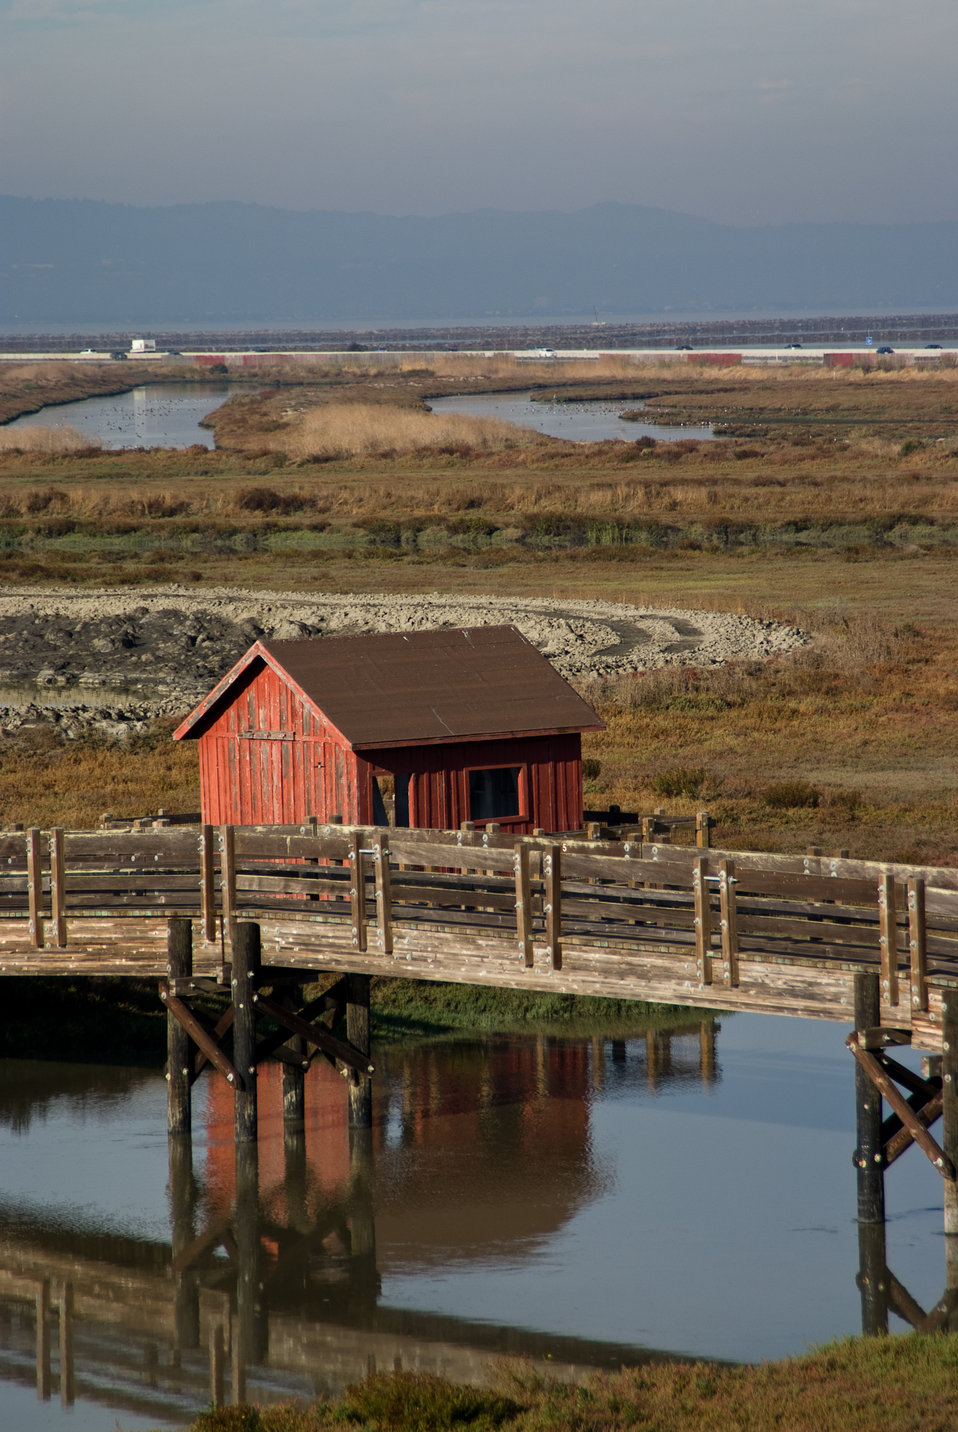 Boat house at Don Edwards San Francisco Bay National Wildlife Refuge